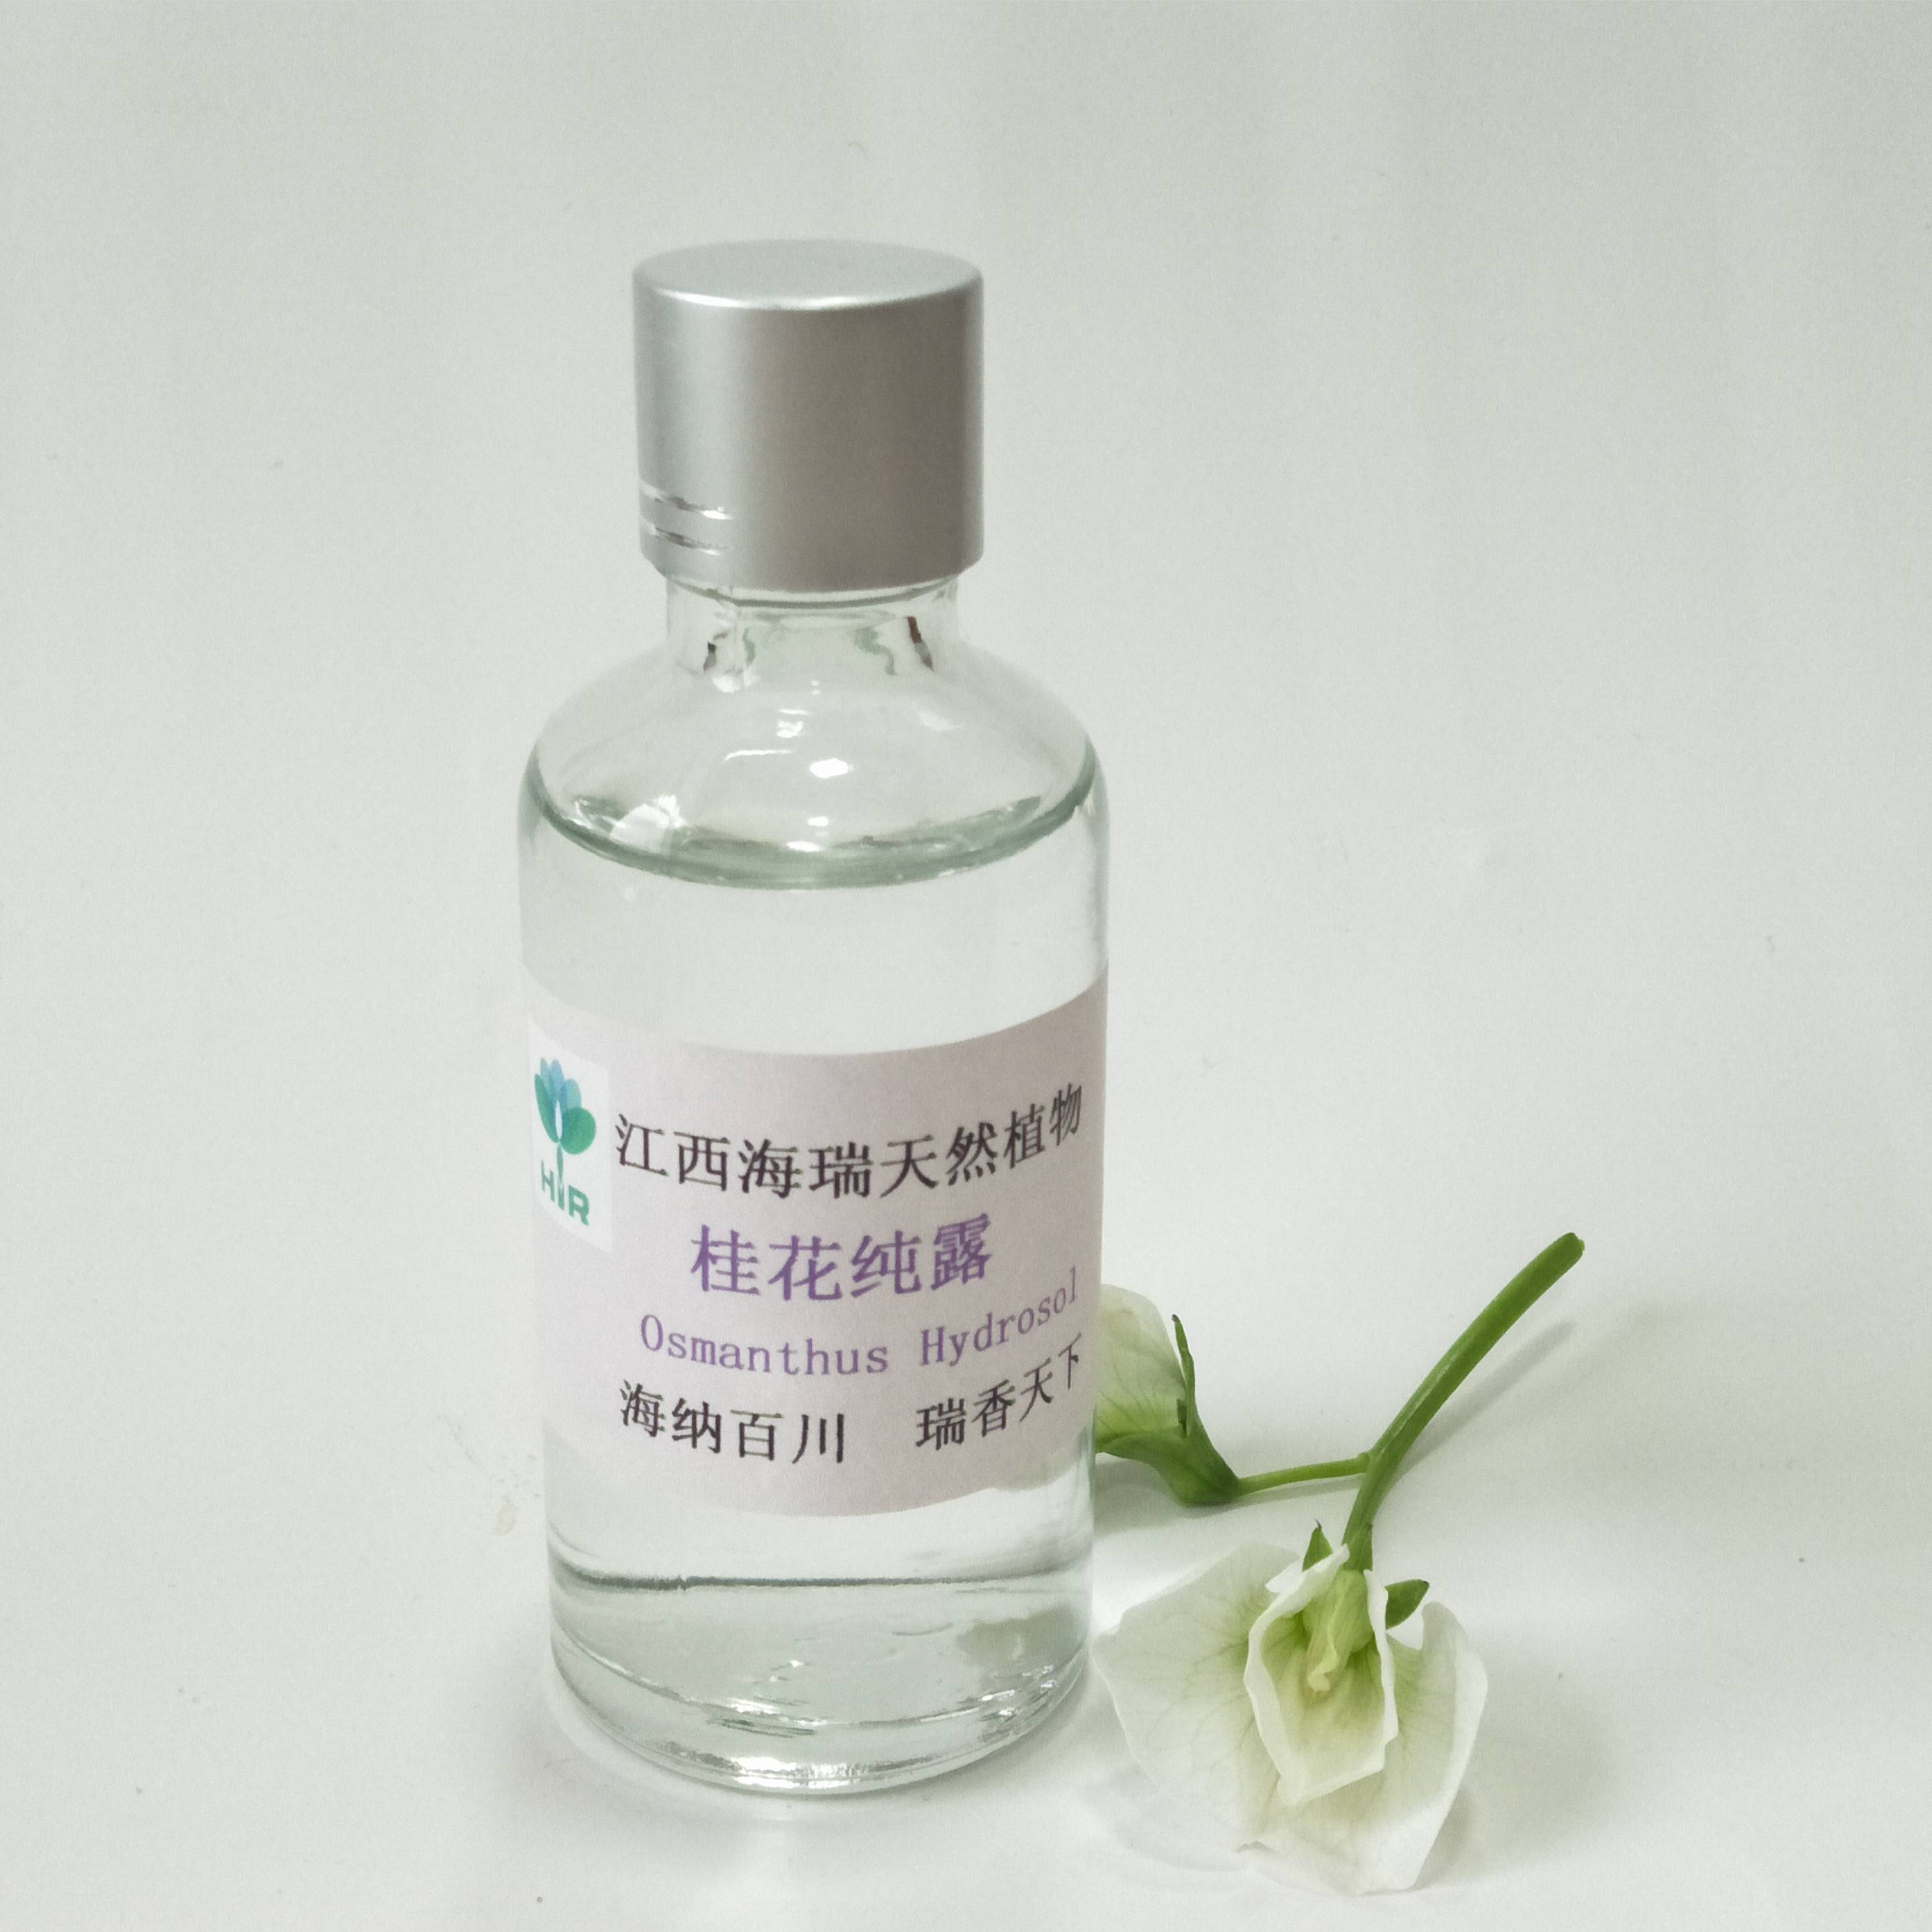 High Performance Rose Oil For Face - Osmanthus hydrosol contain flower smell – HaiRui